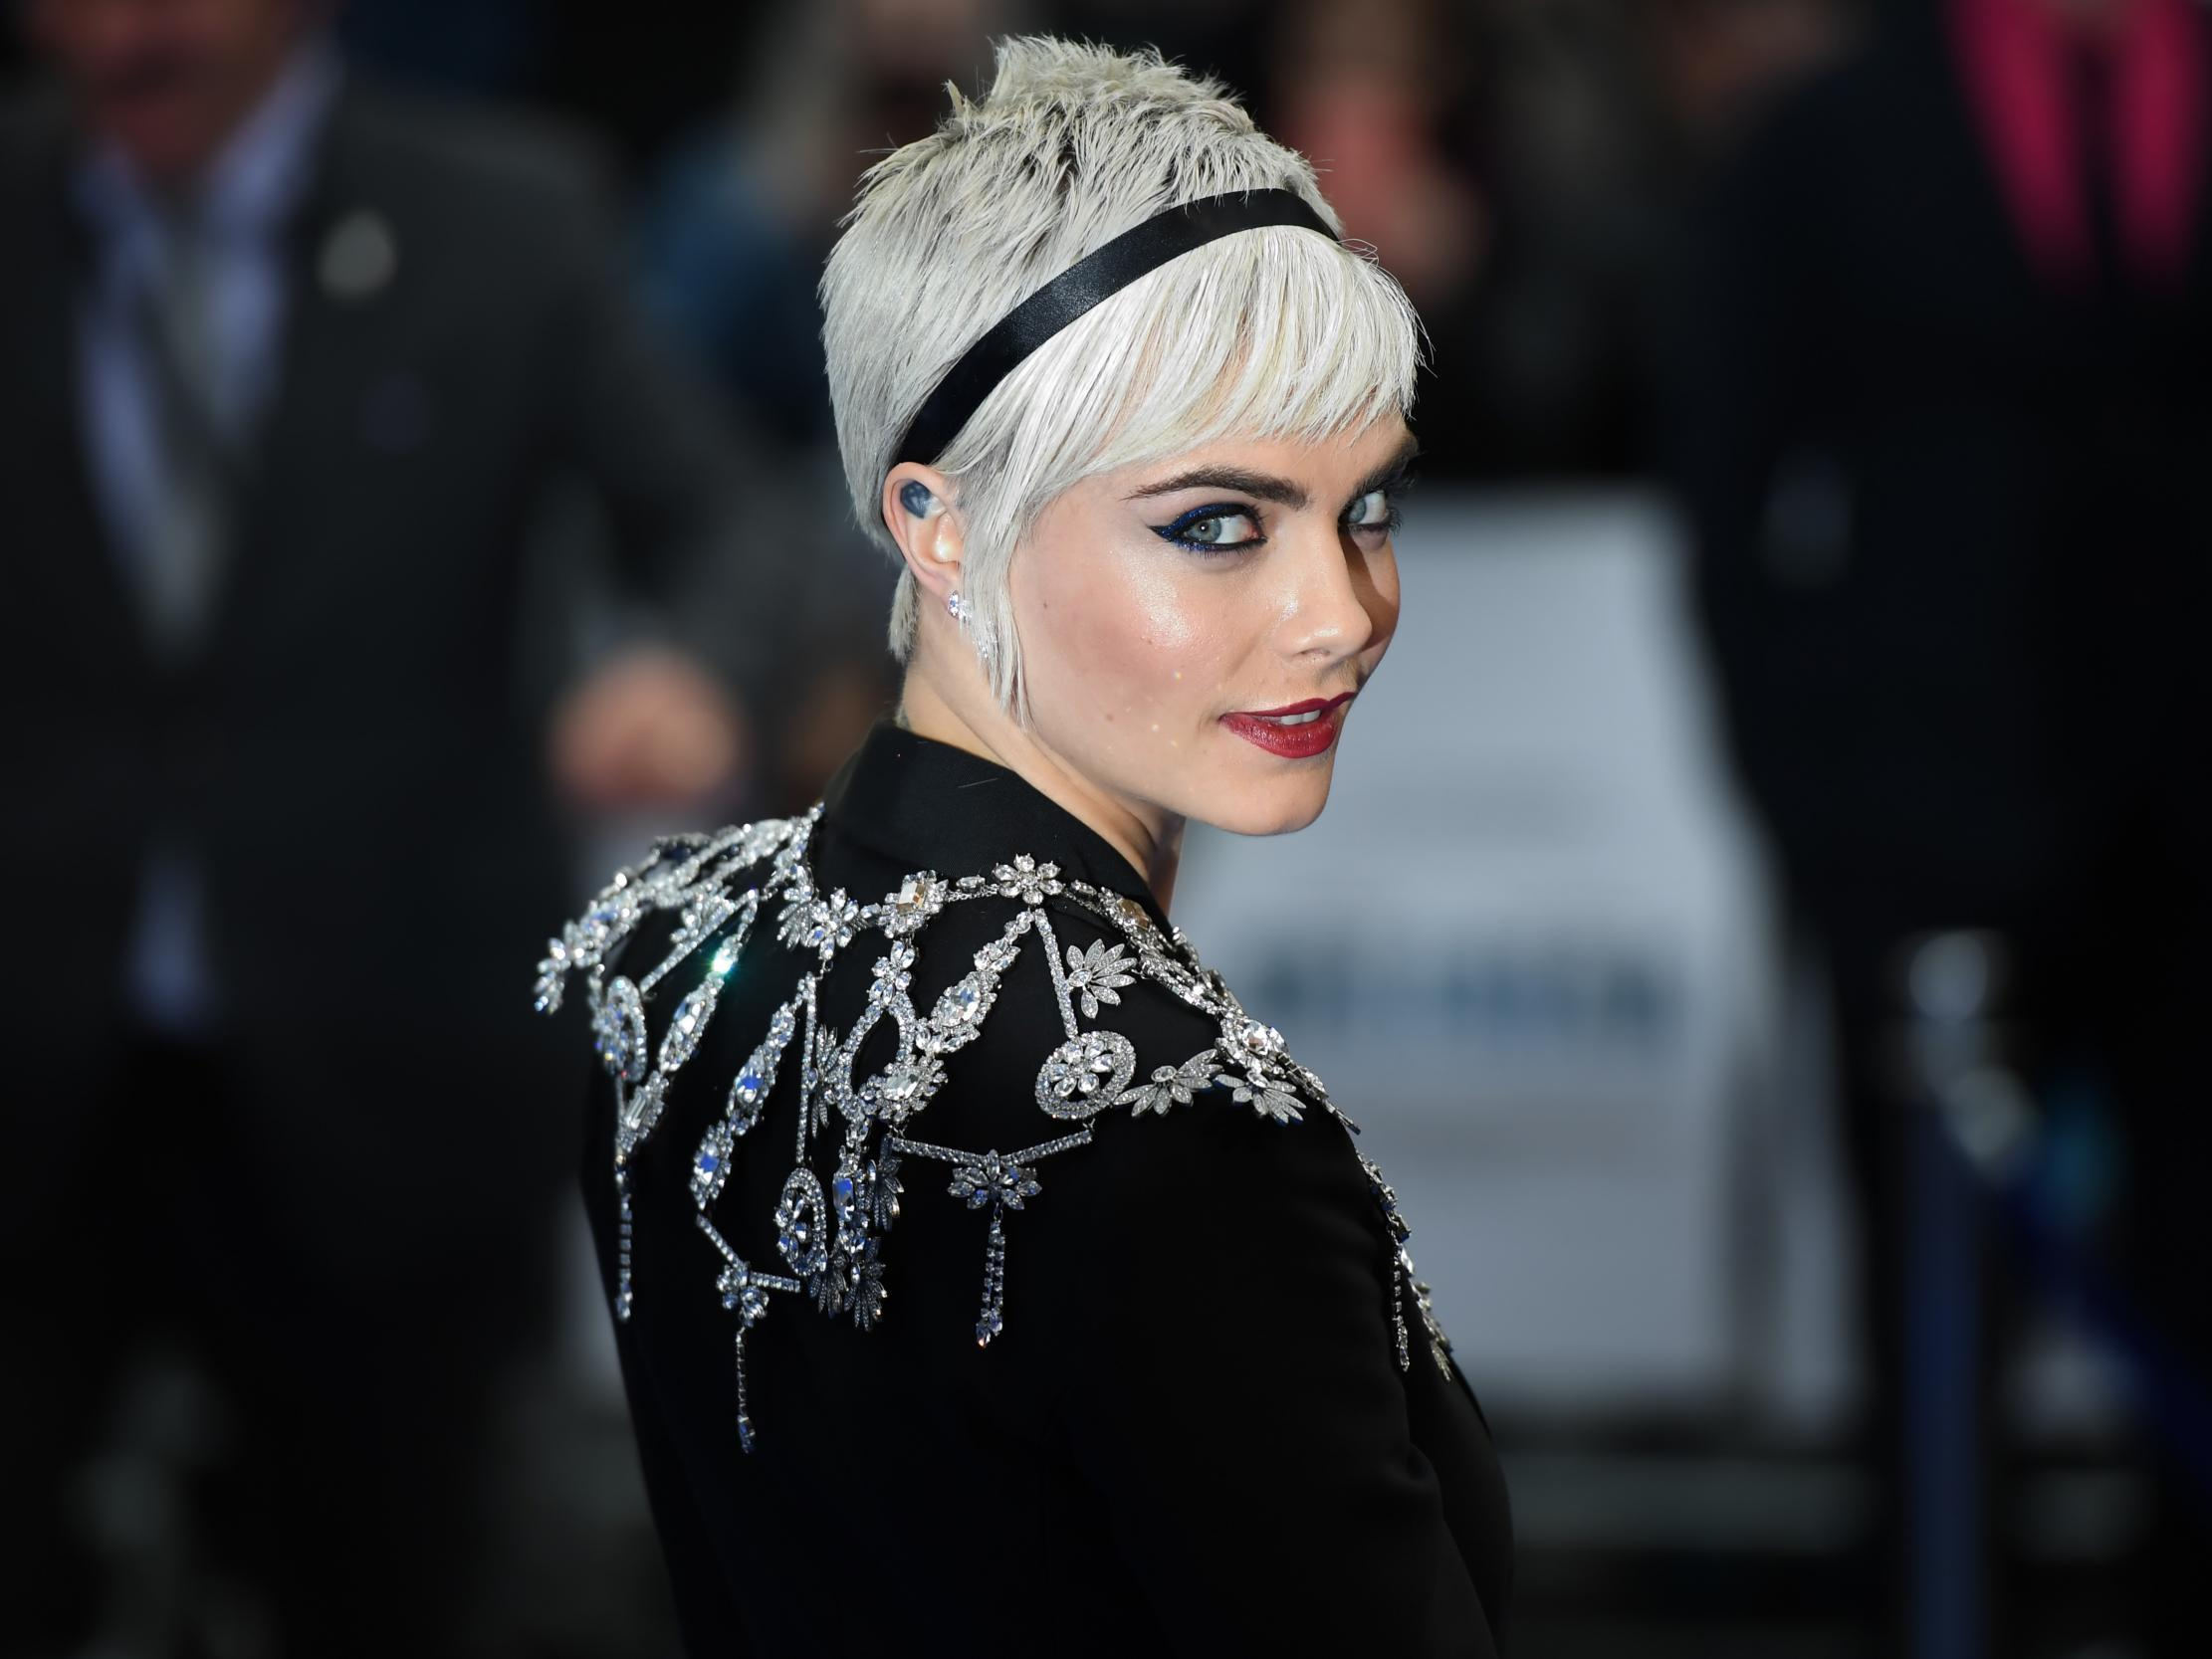 Cara Delevingne 'didn't really know what assault was' before #MeToo